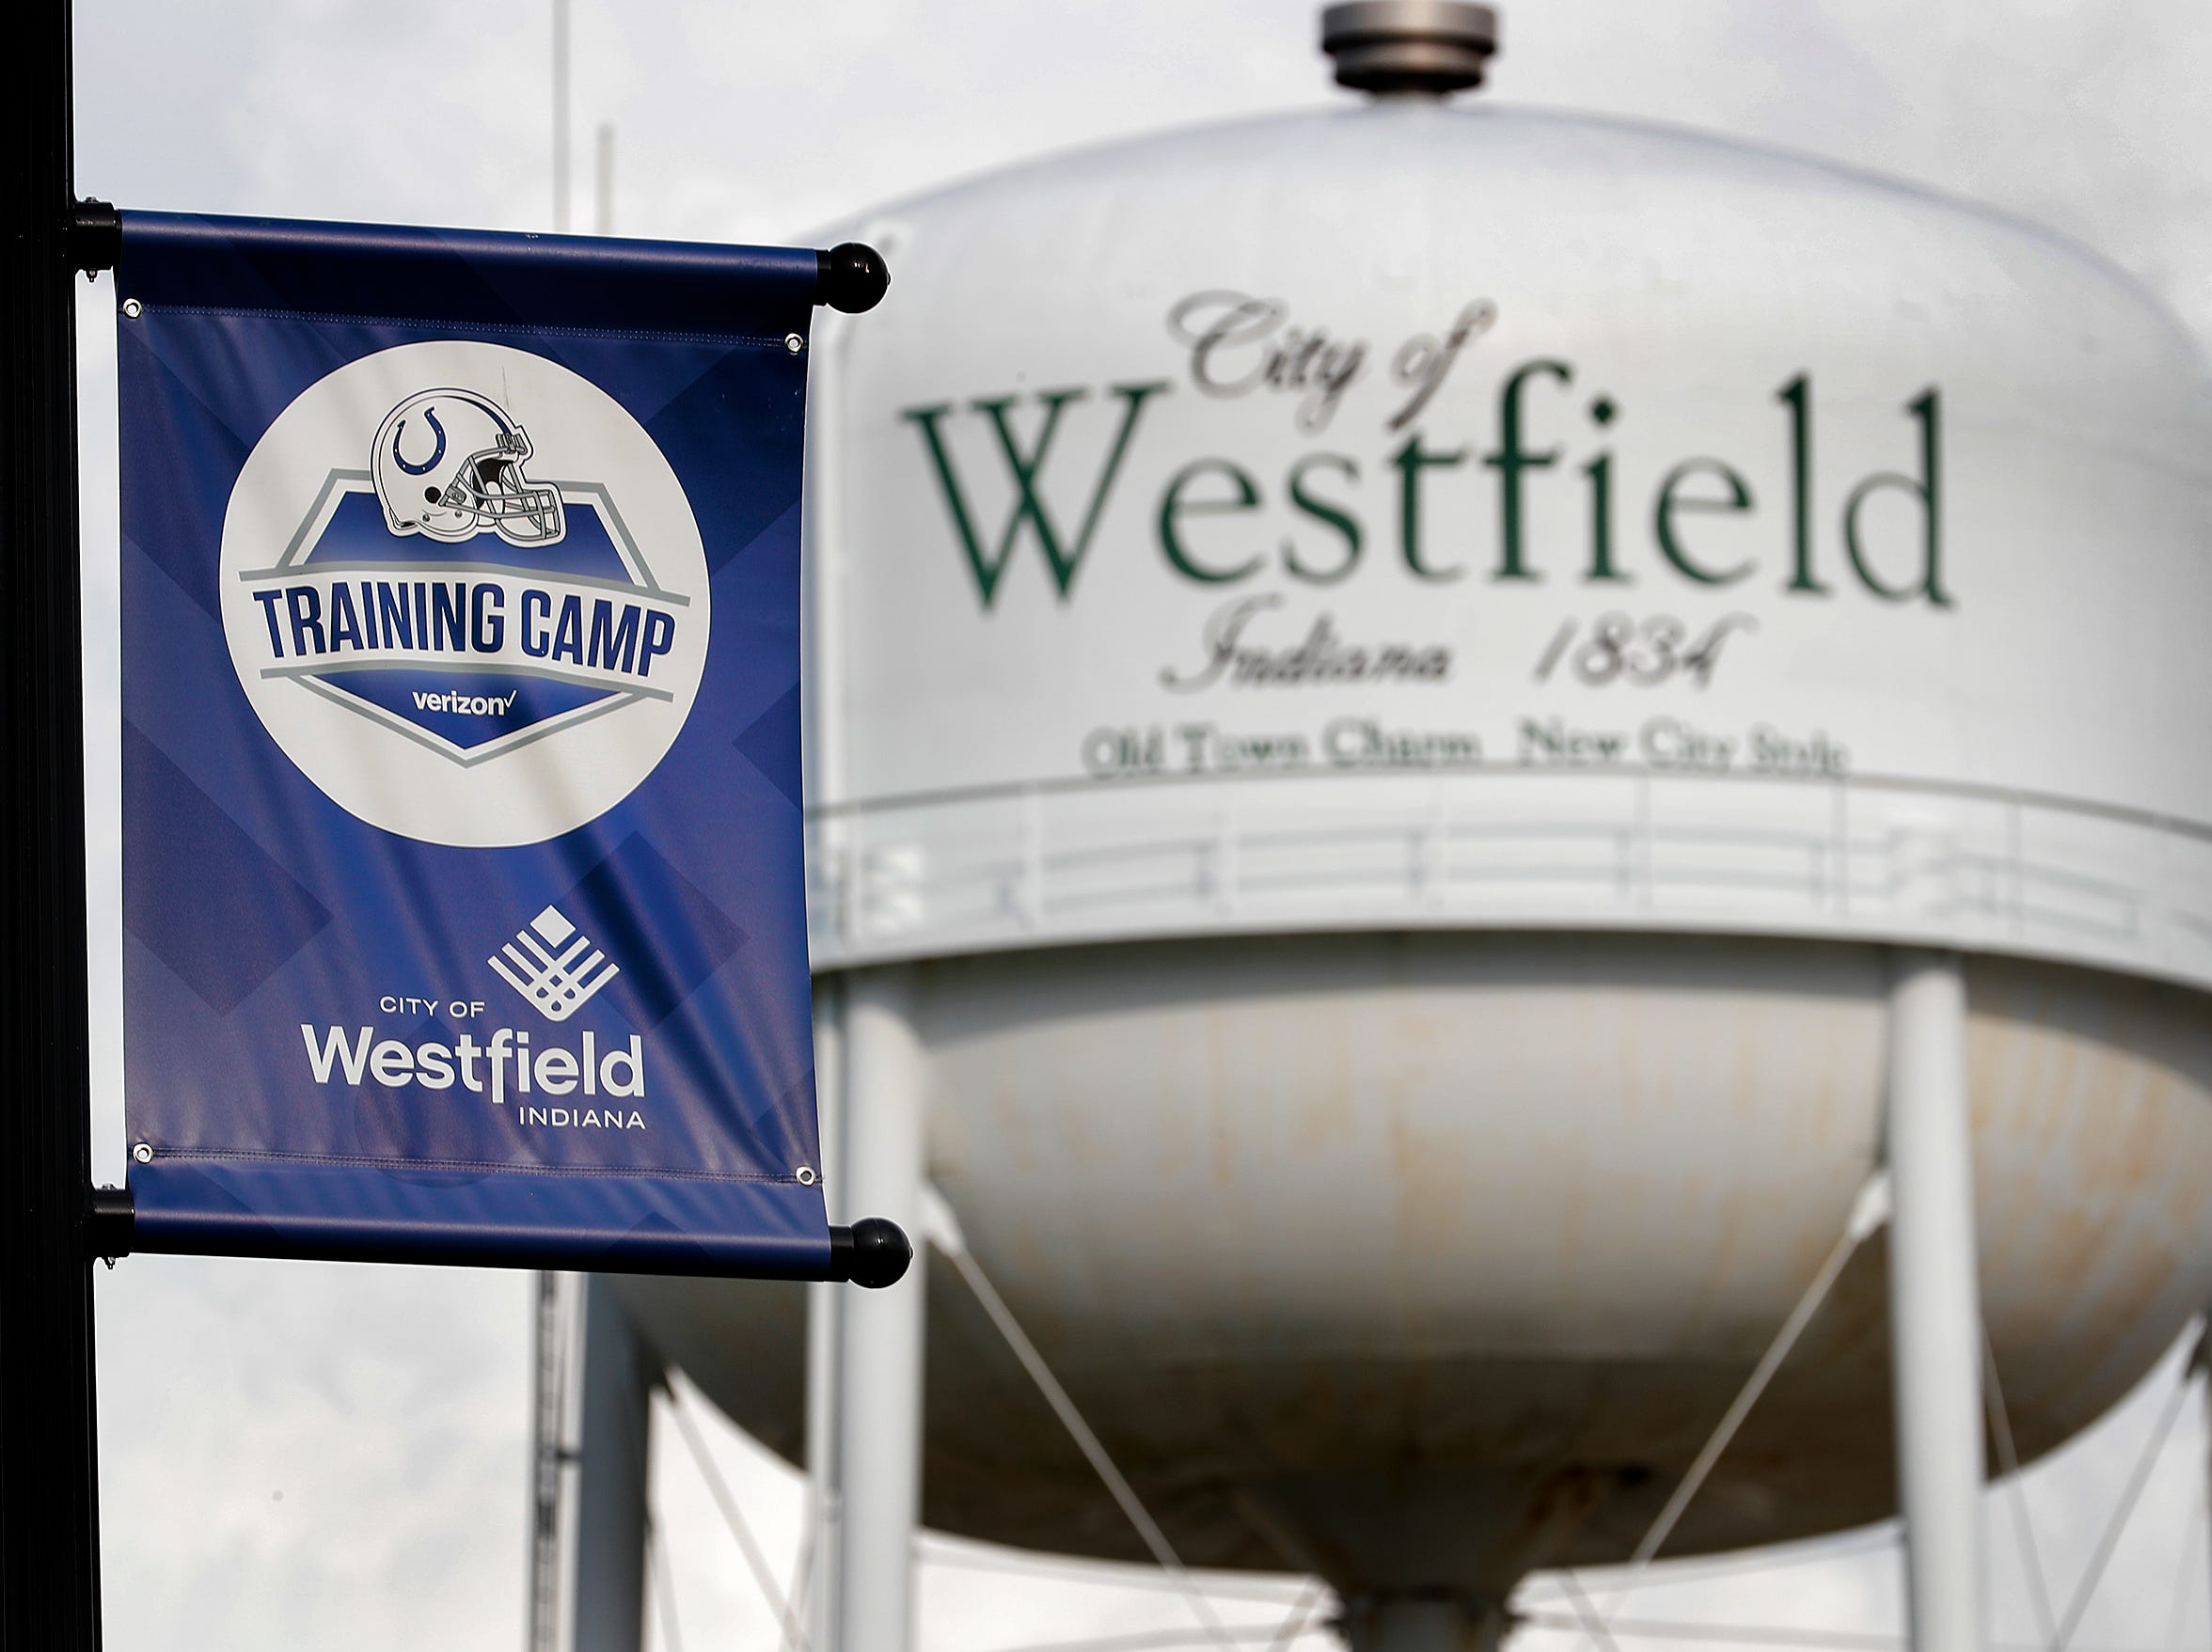 Whitestown and Westfield among fastest growing cities in Indiana